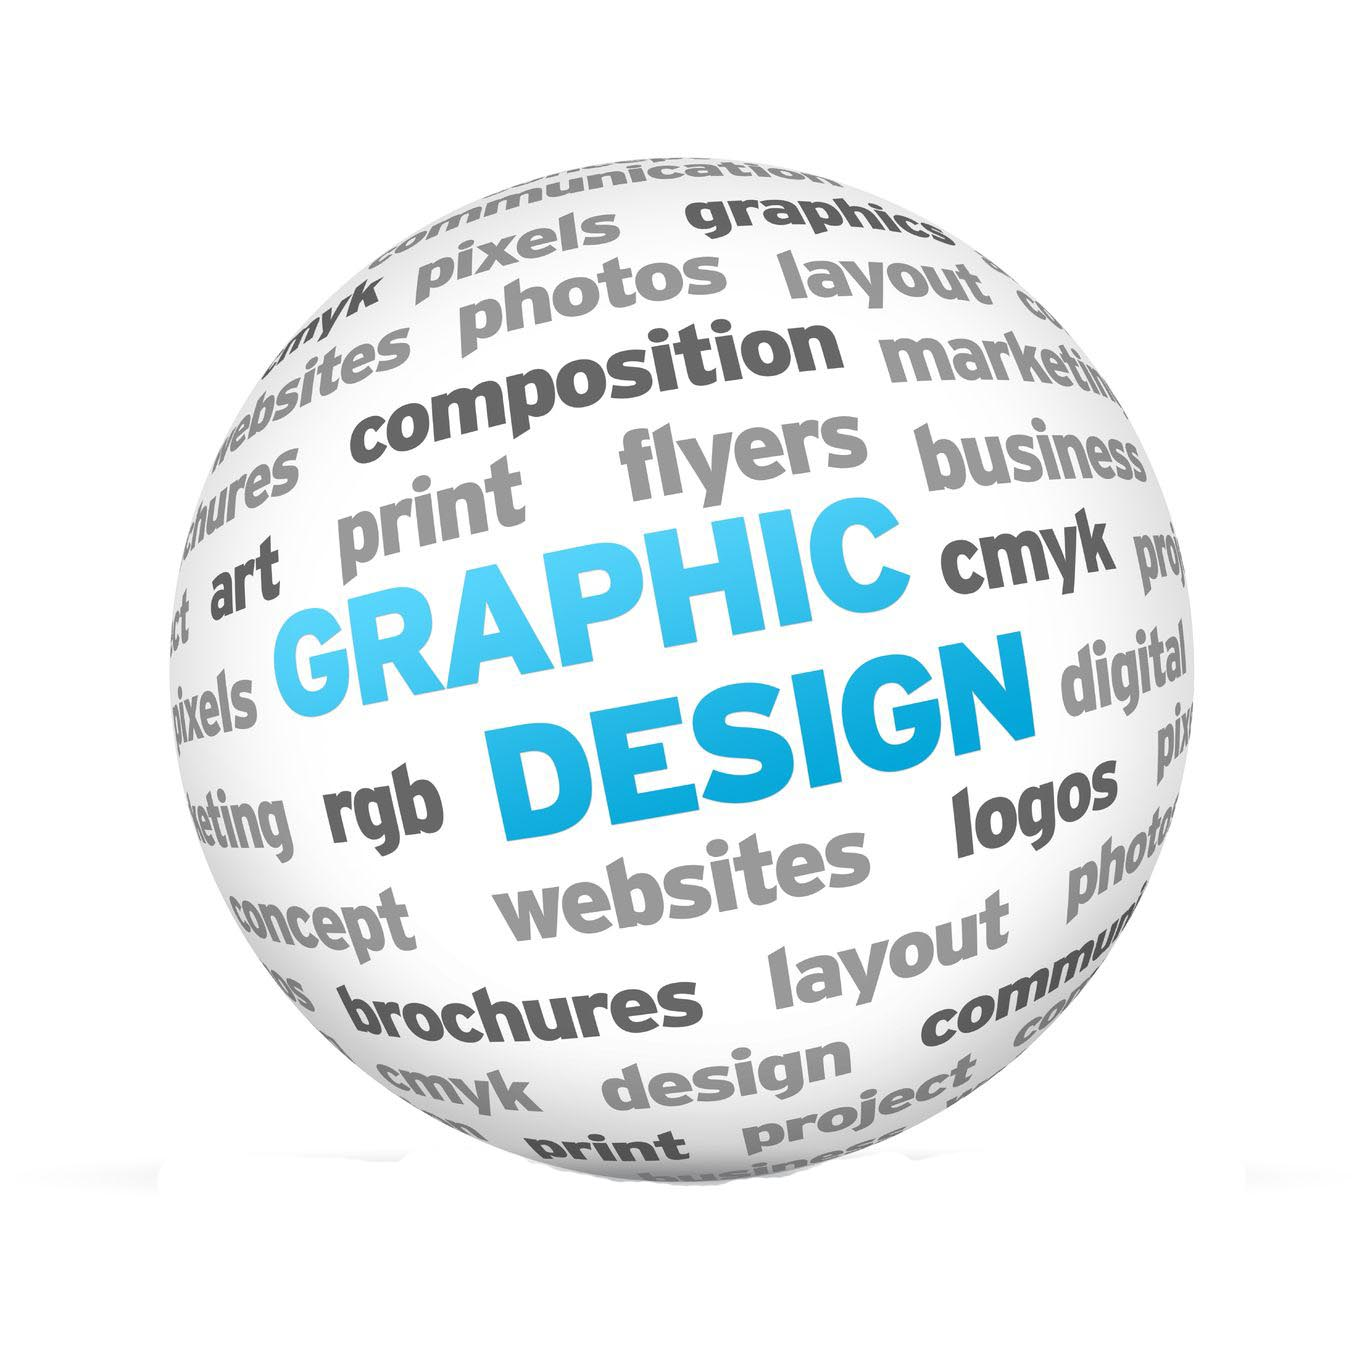 Phoenix Graphic Design